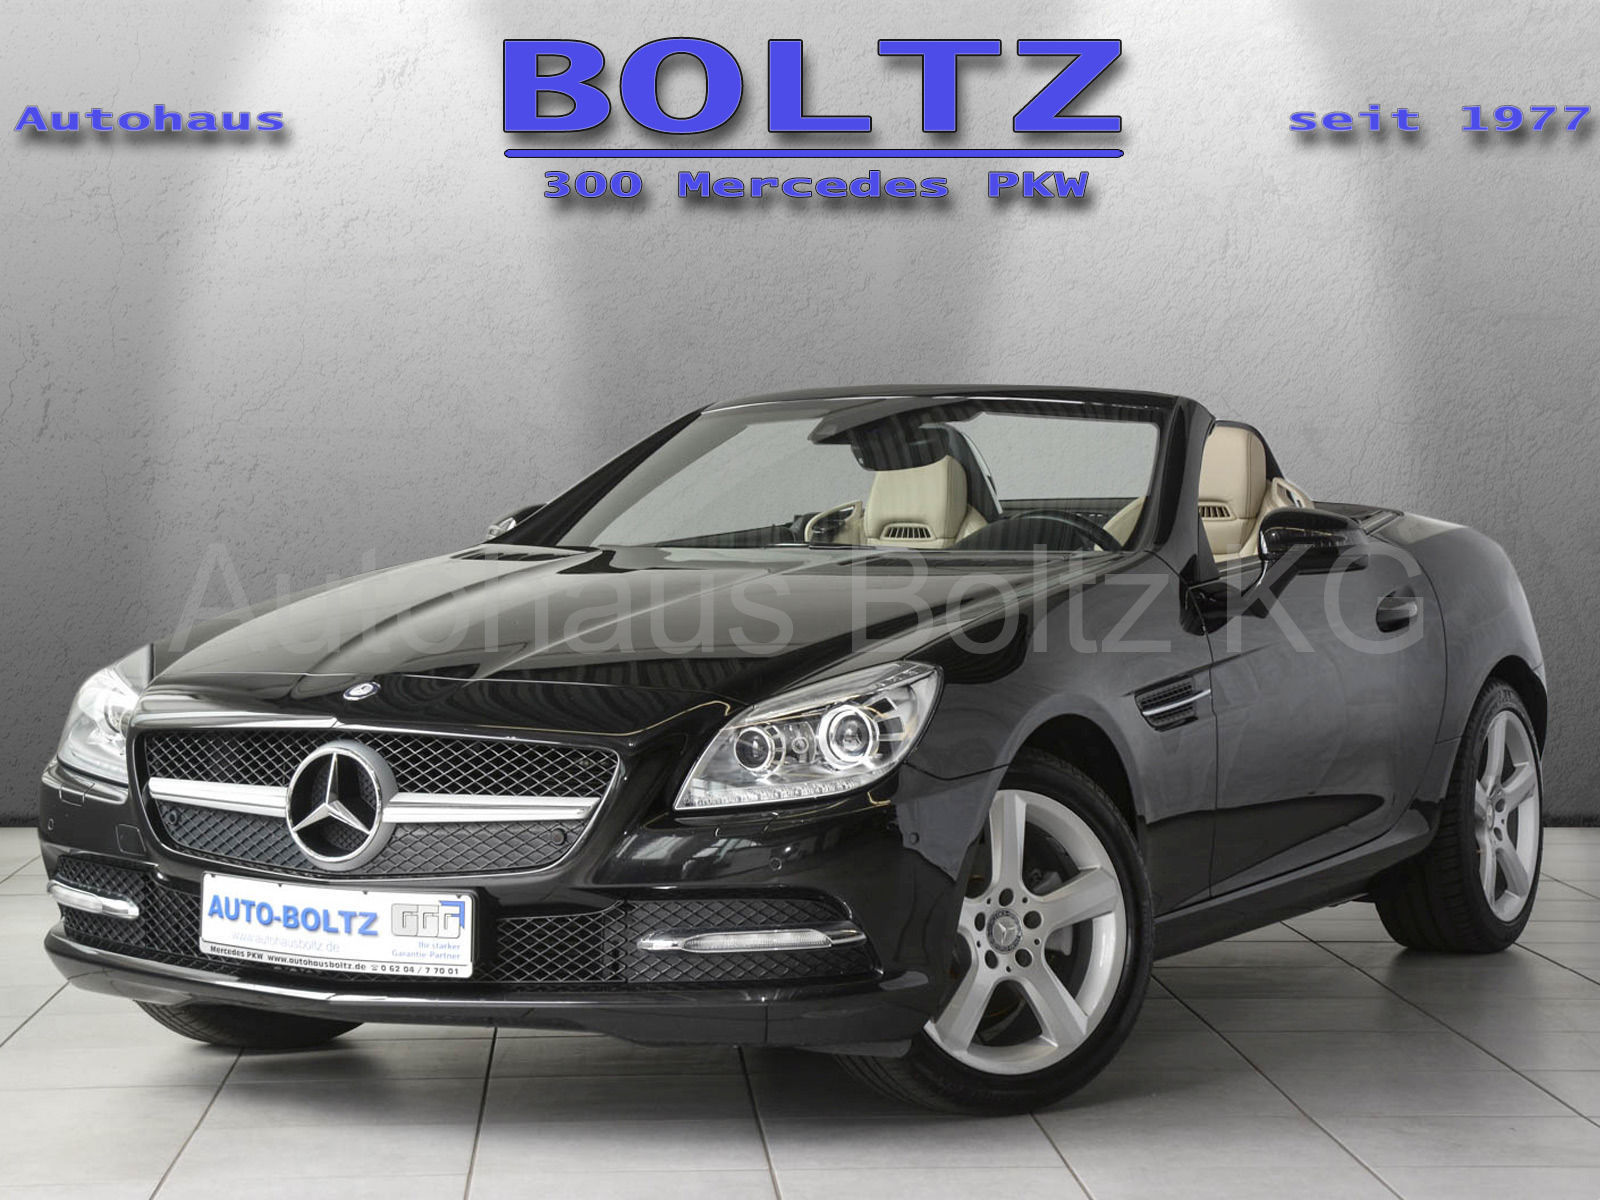 MERCEDES-BENZ SLK 200 Panorama ILS Parkf. Comand Airscarf